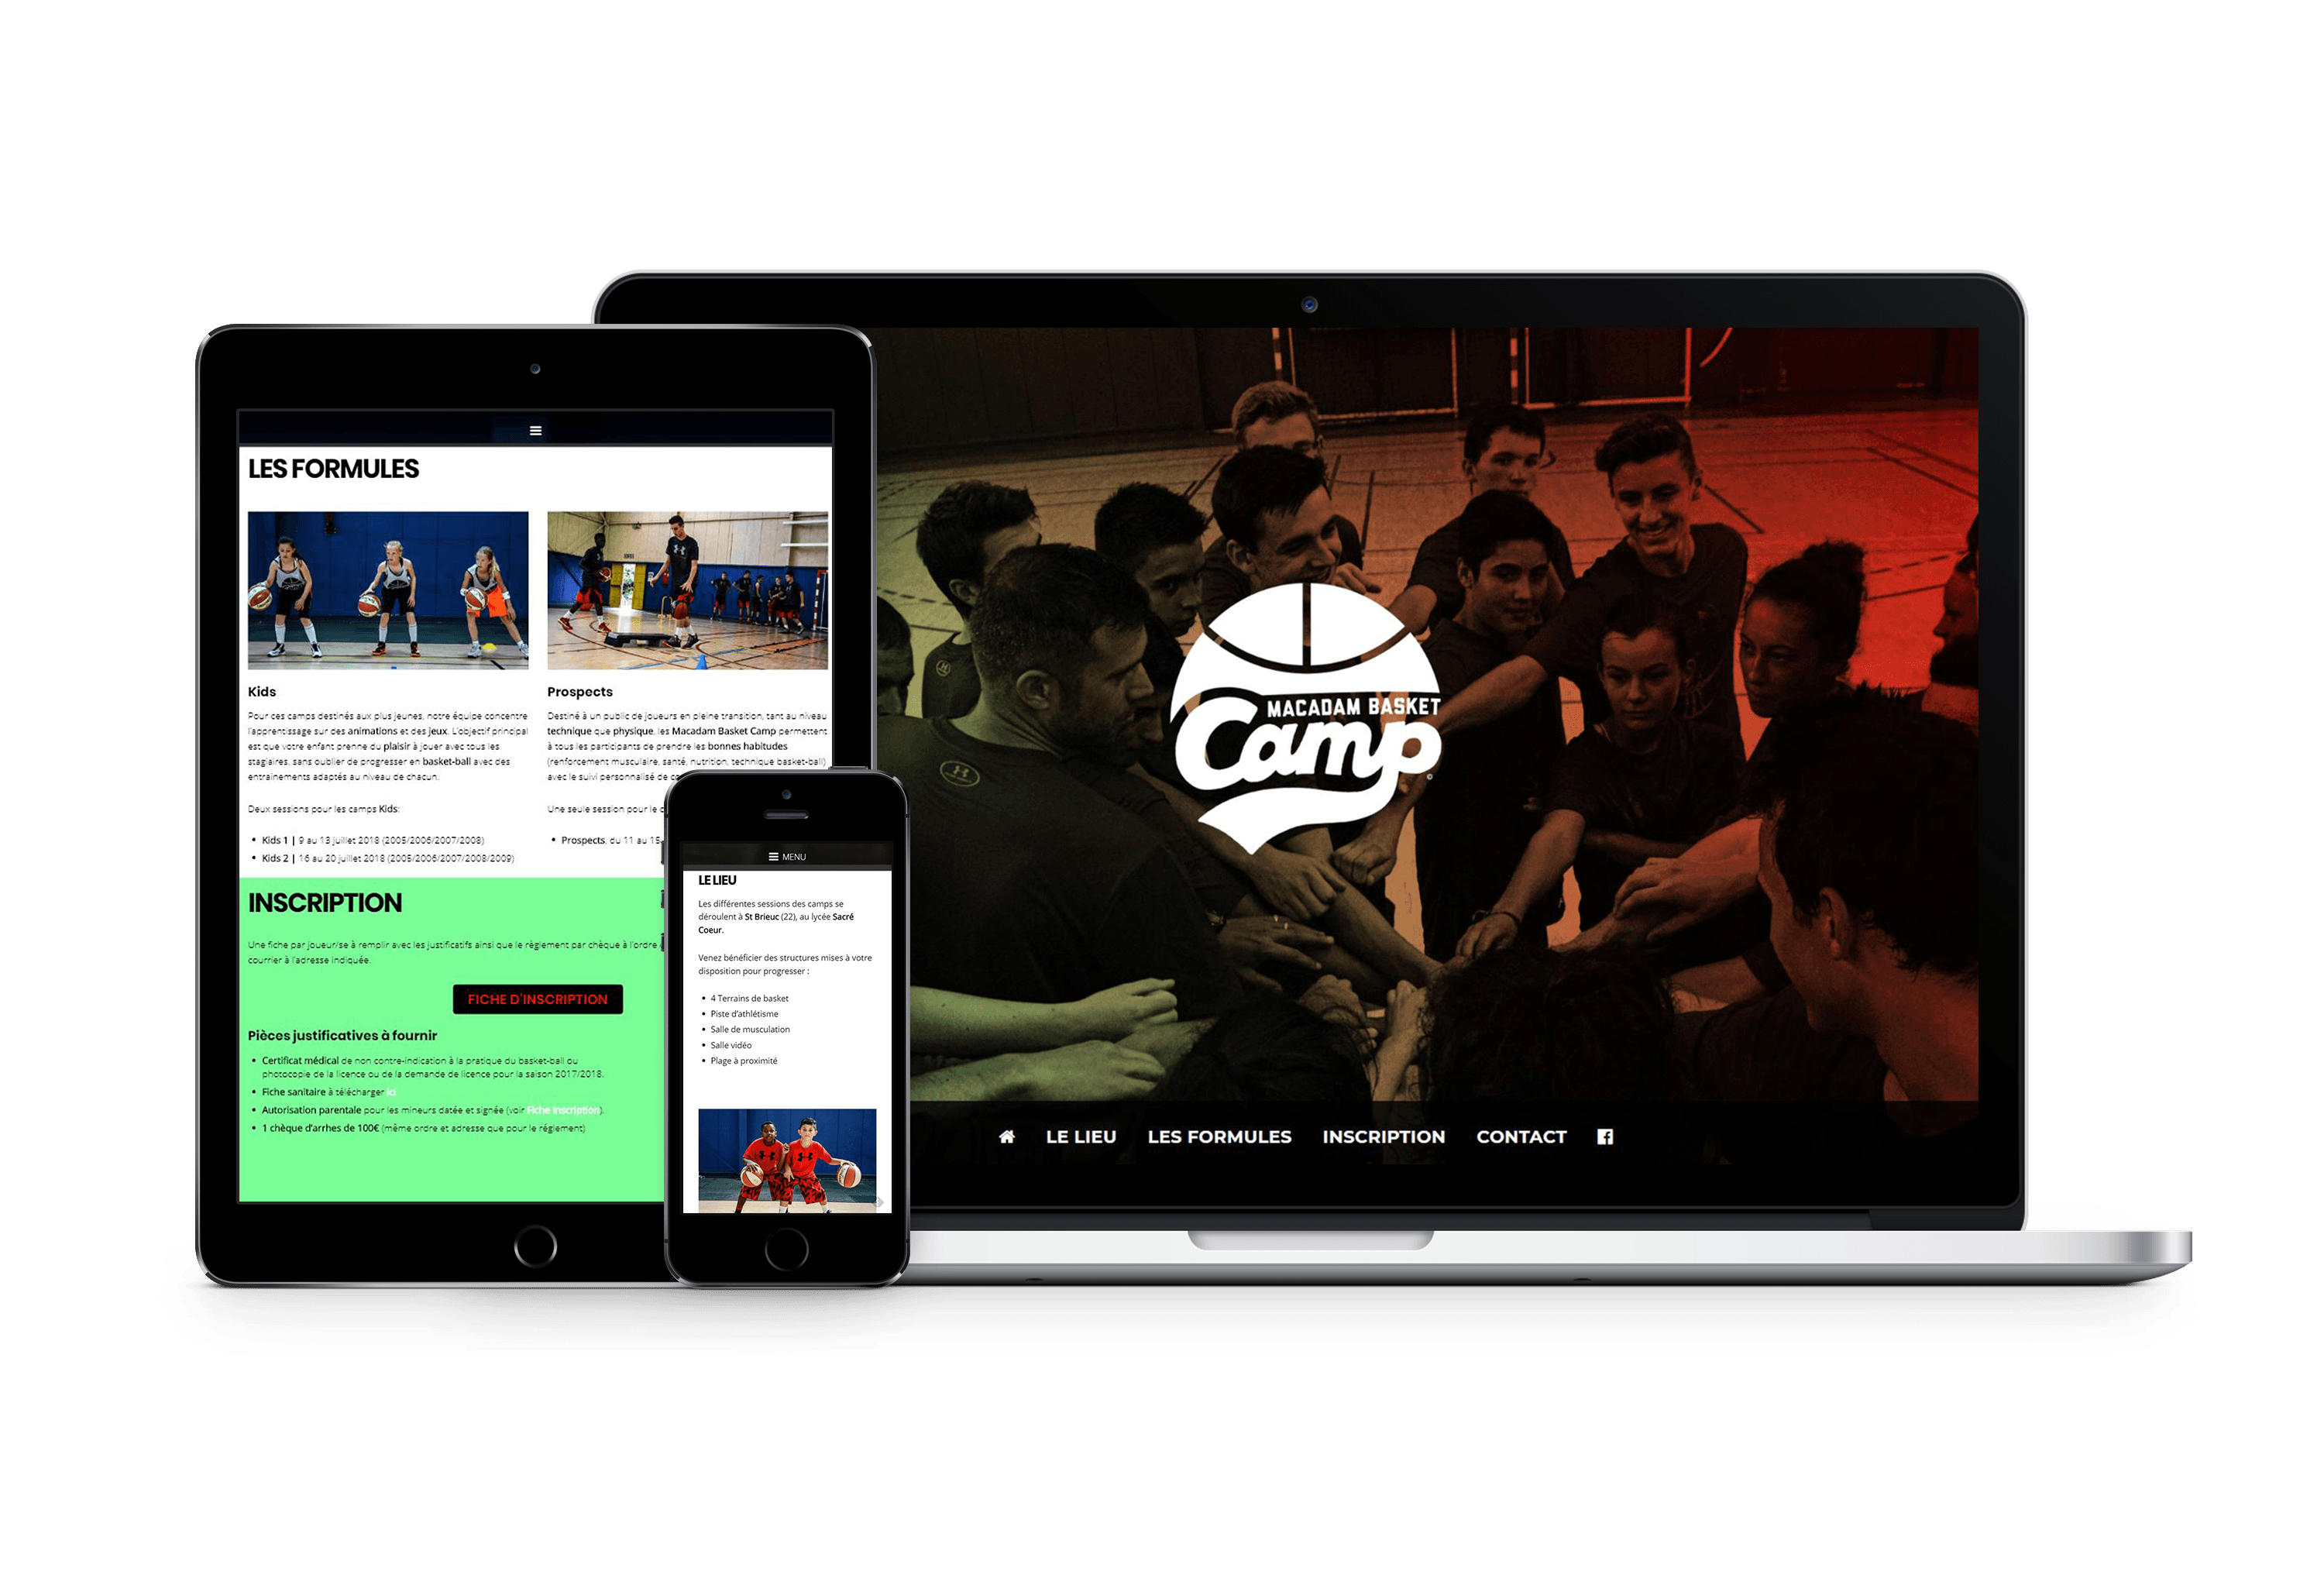 Macadam Basket Camp | Site Internet